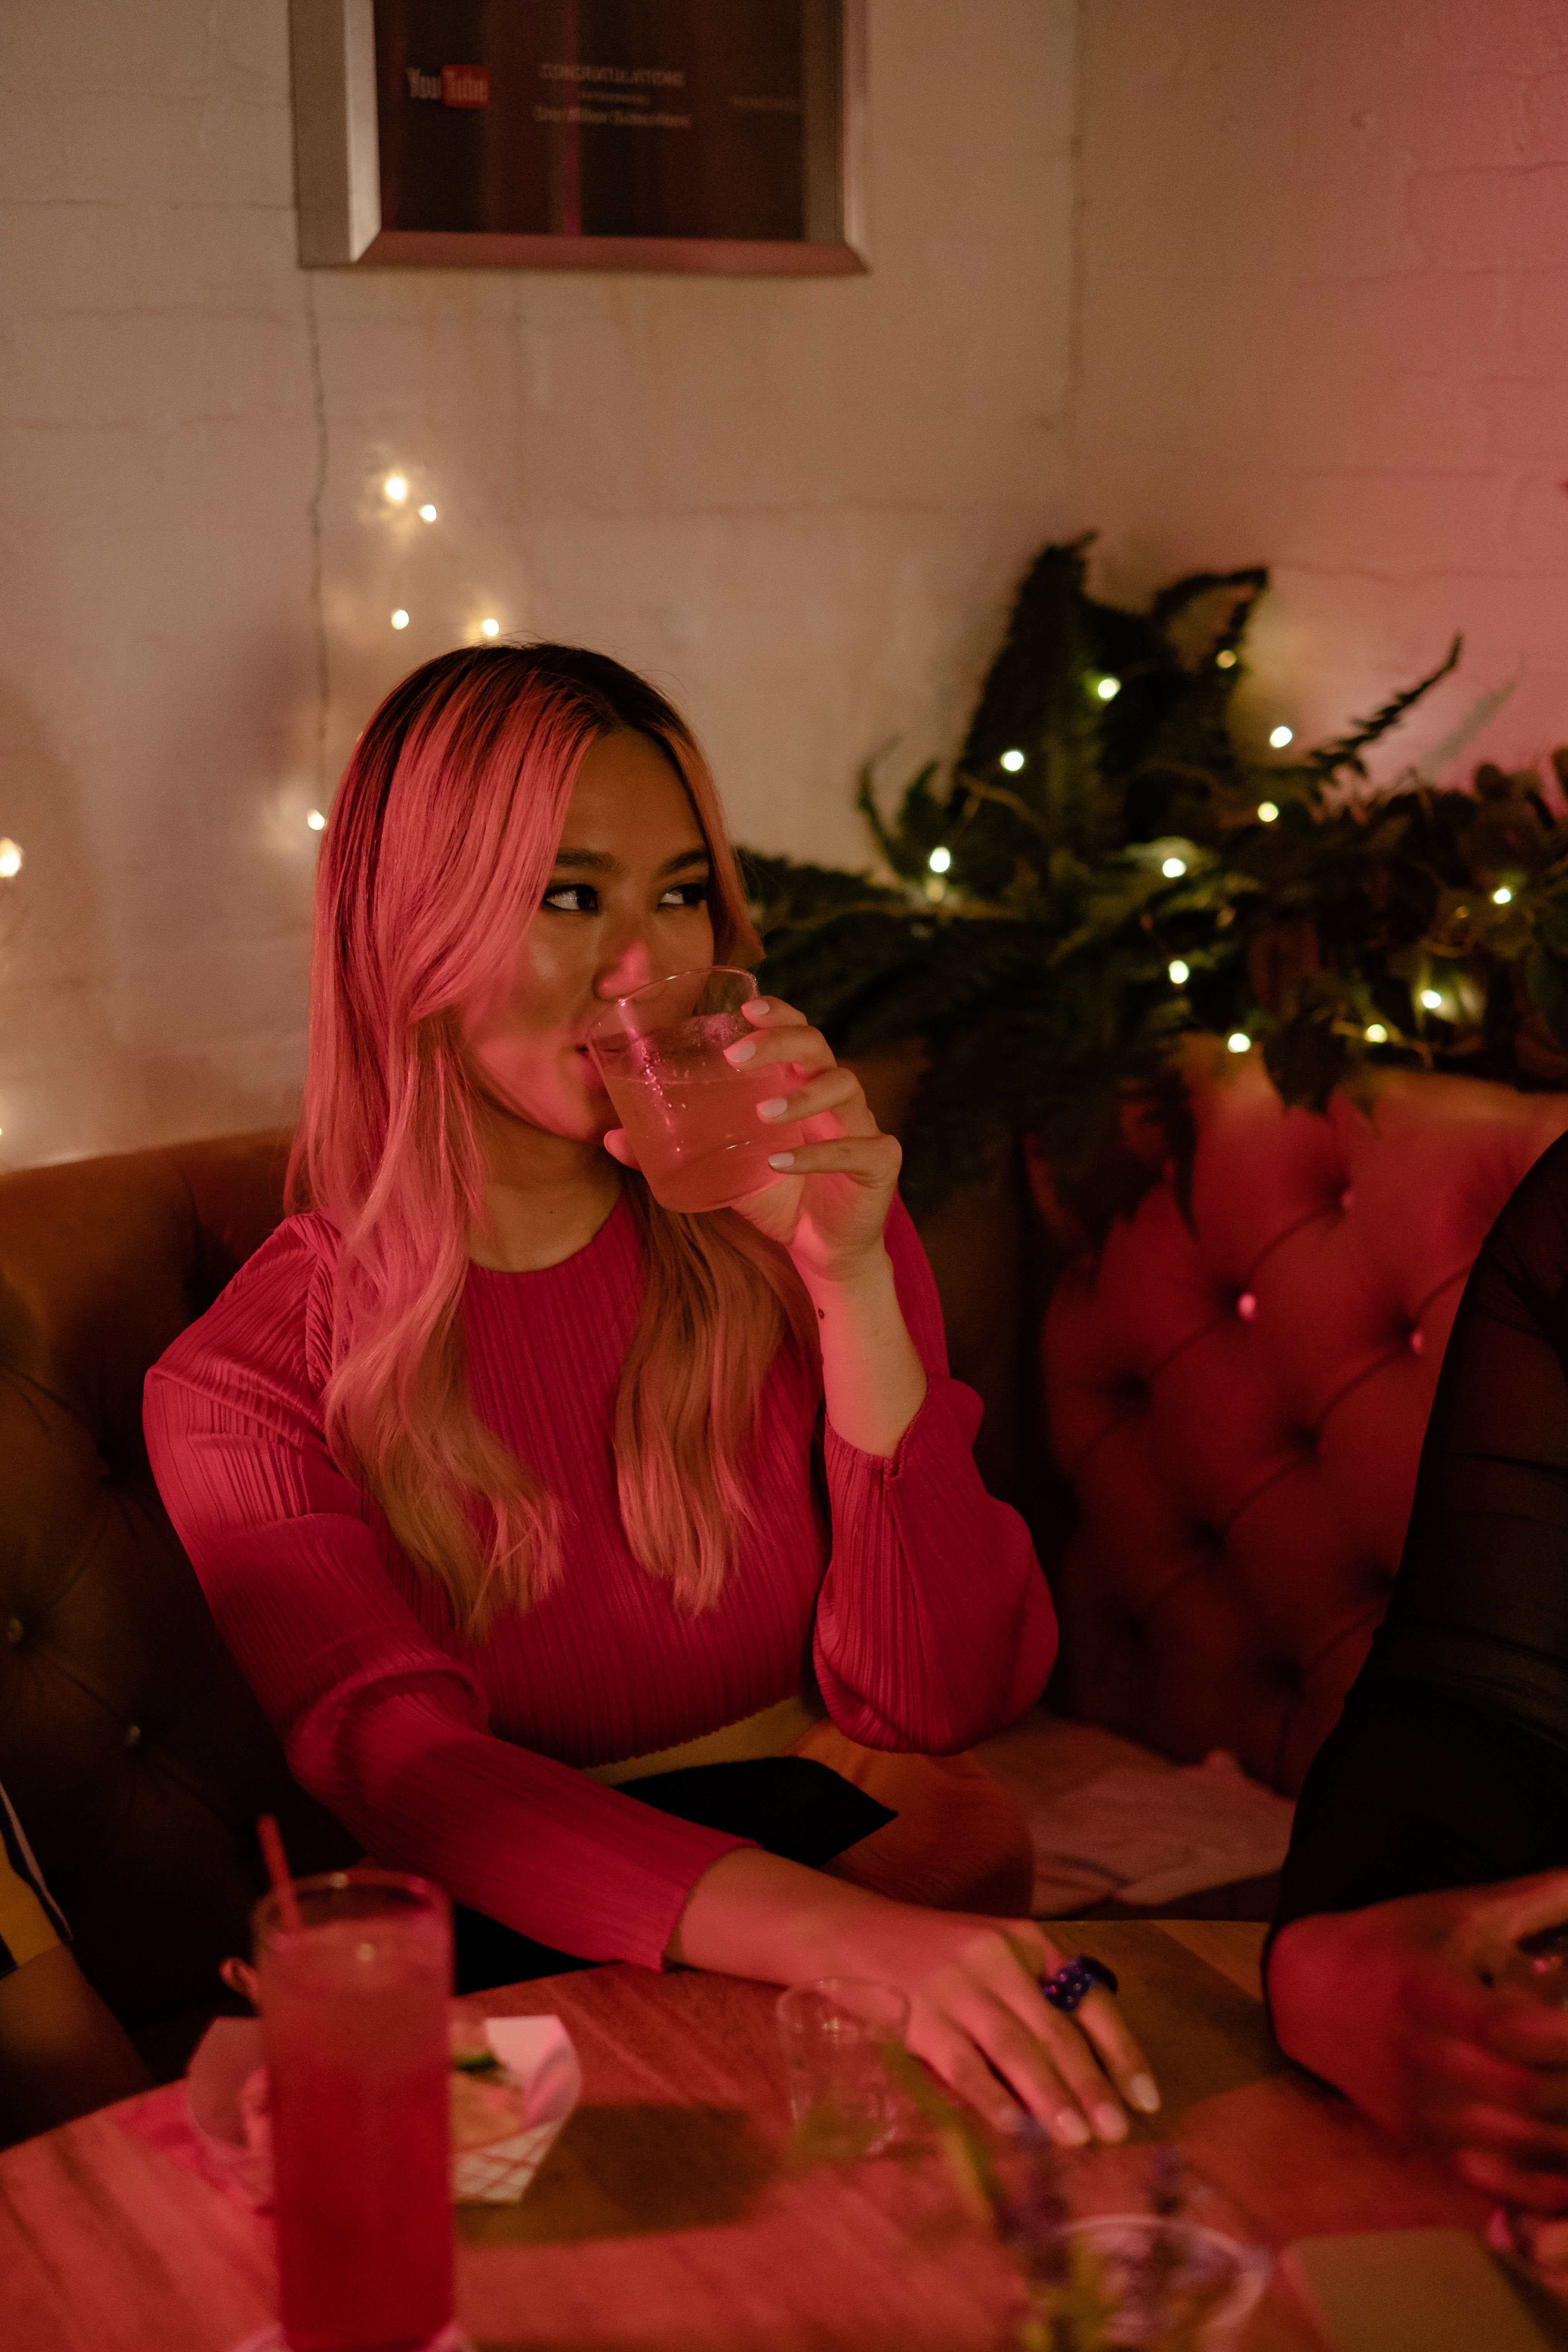 A transfeminine person sipping a drink at a bar